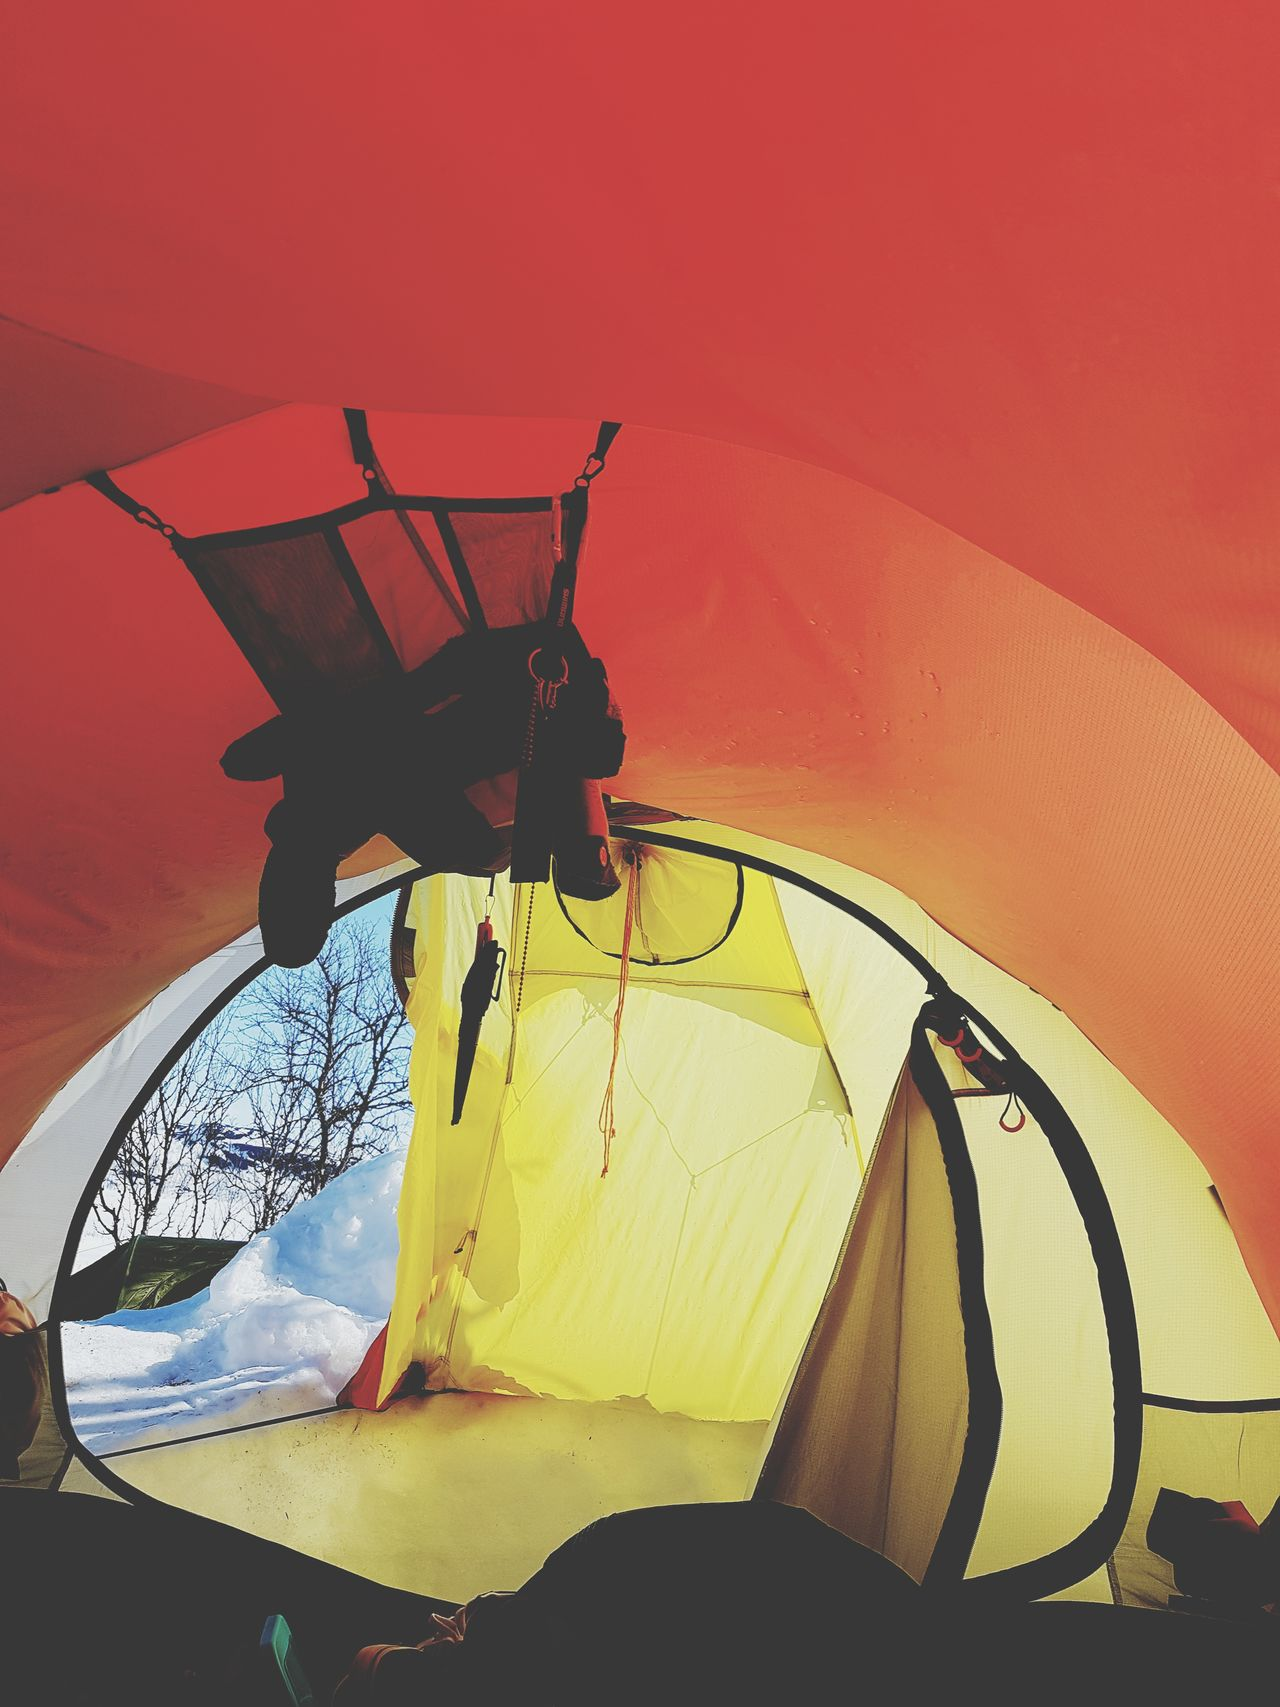 No People Outdoors Day Close-up Snow Snowboarding Snowboard Beauty In Nature Tent Sunset Winter Mountain Sea Adults Only Nature Sky Adventure Cold Temperature Fisherman Sunlight Portrait Clear Sky Blue